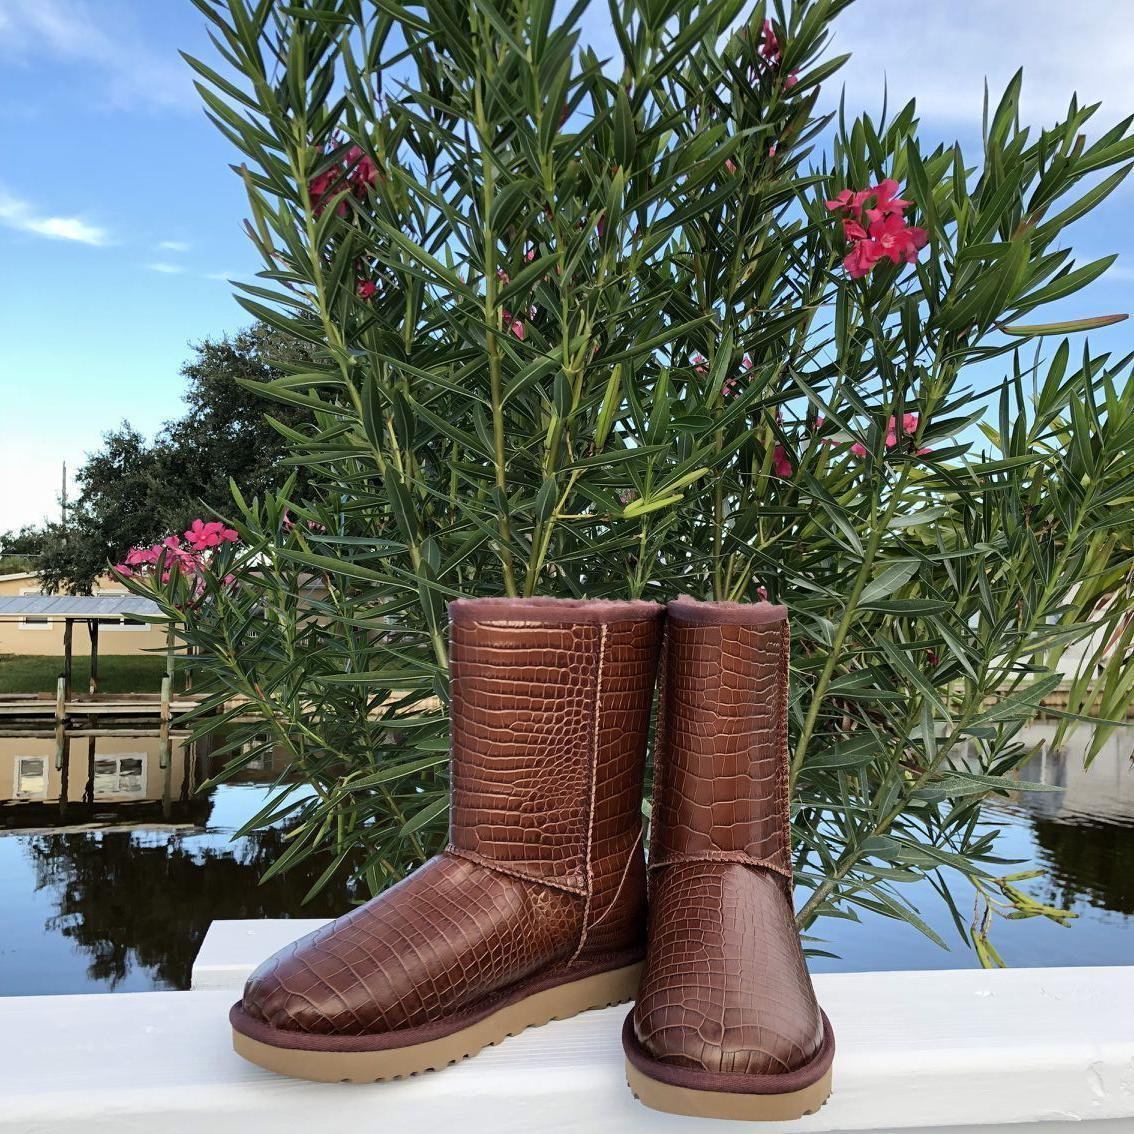 d9dfa2b10bbe S l1600. S l1600. Previous. NWT UGG Classic Short Croco Spice Leather Boots  US Size Women 7